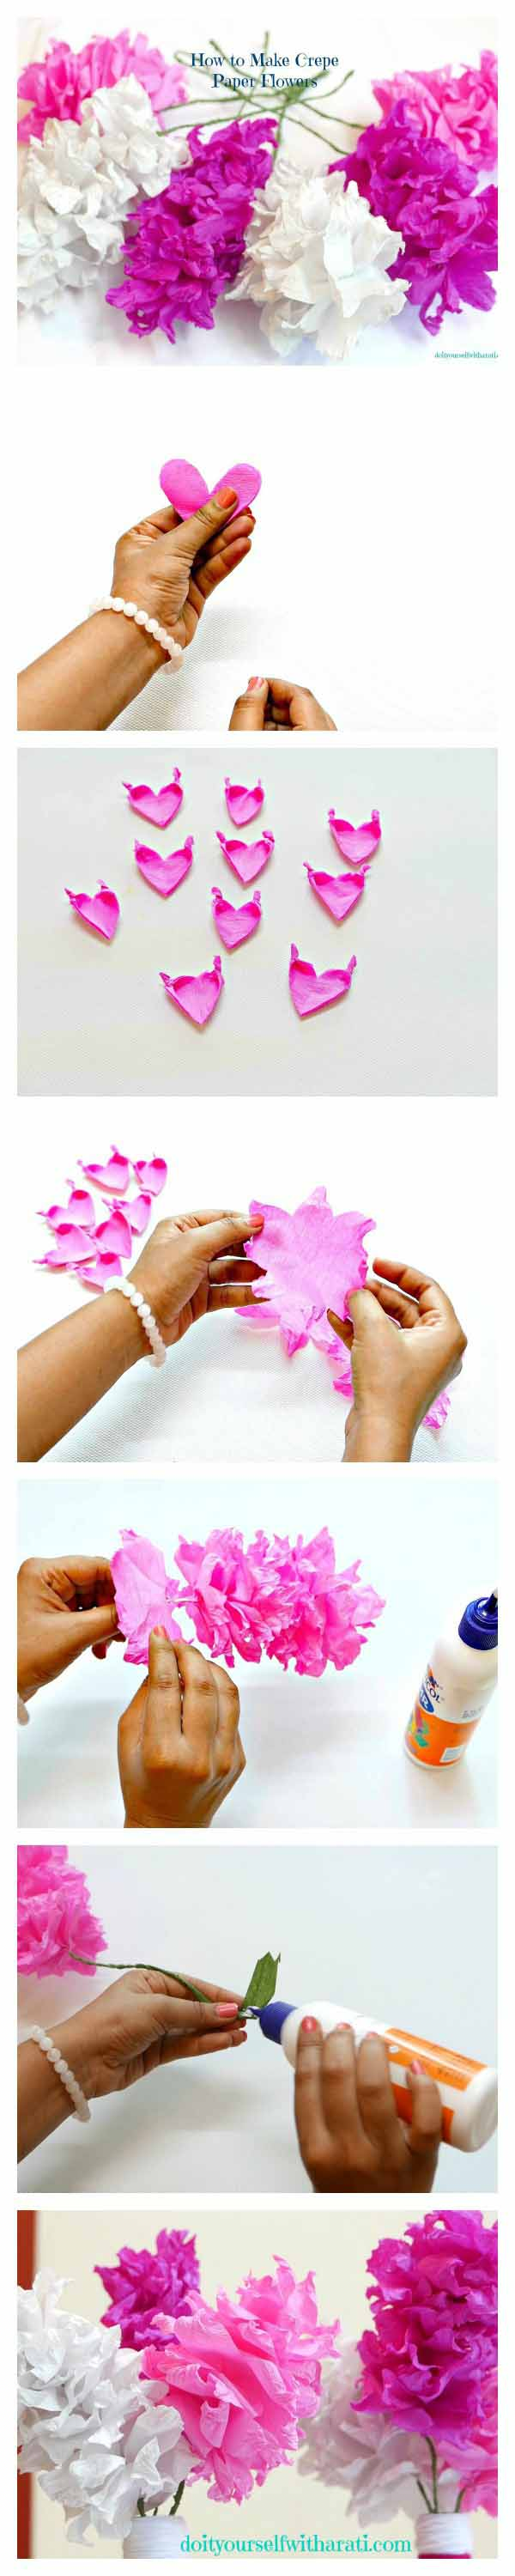 Make these beautiful crepe paper flowers easily diy home decor make these beautiful crepe paper flowers easily diy home decor flower mightylinksfo